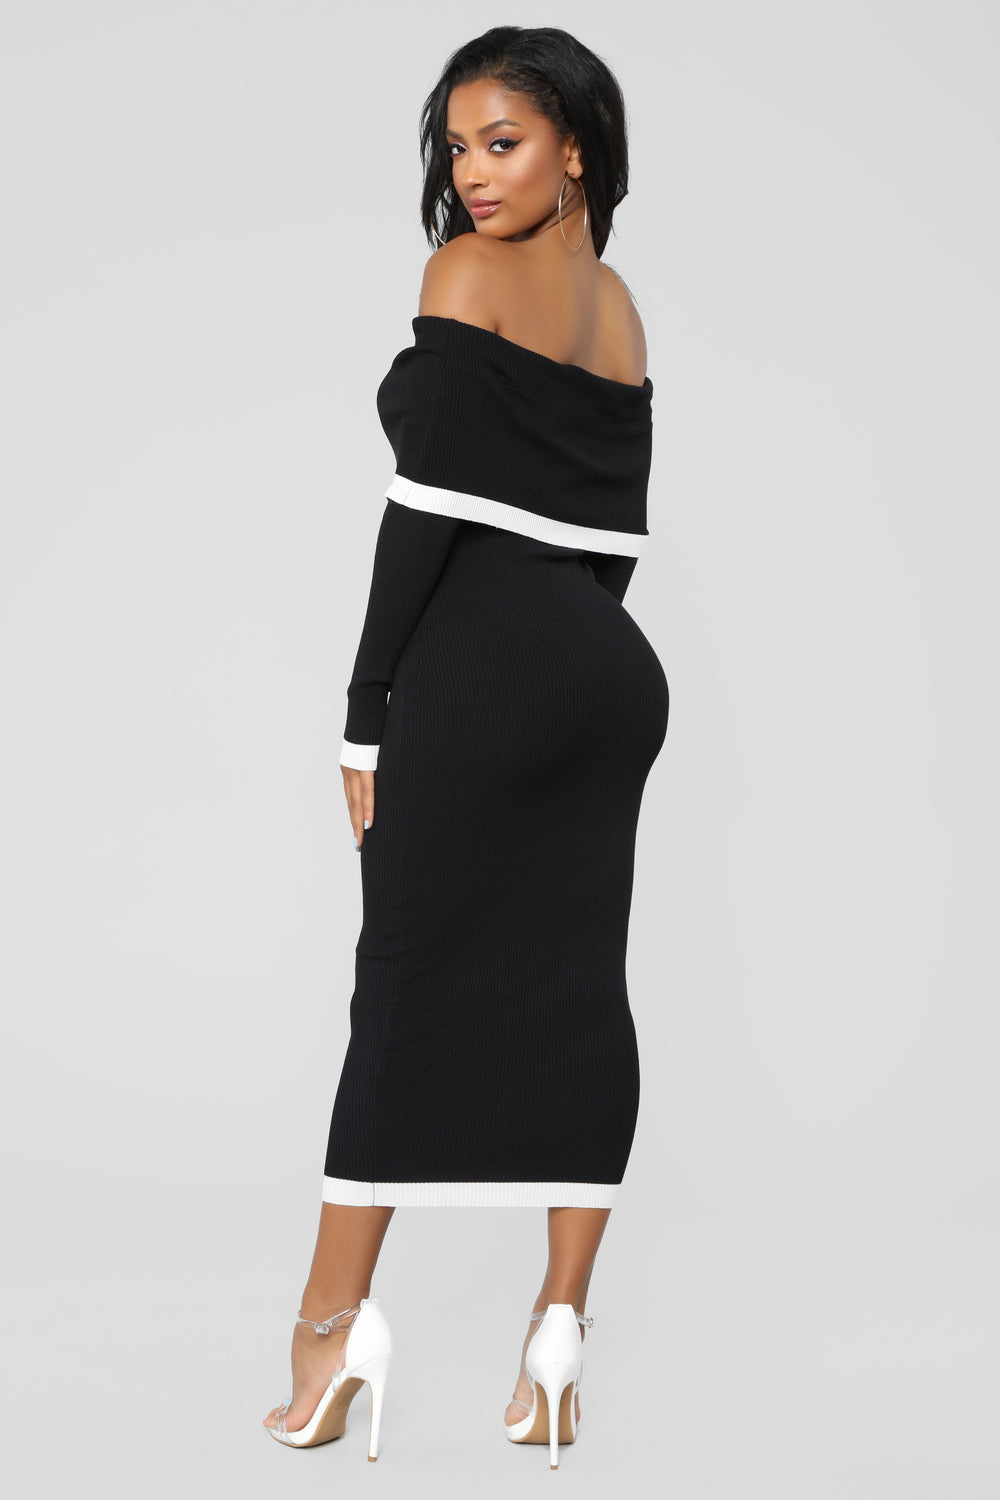 Will You Be Mine Dress - Black/Off White